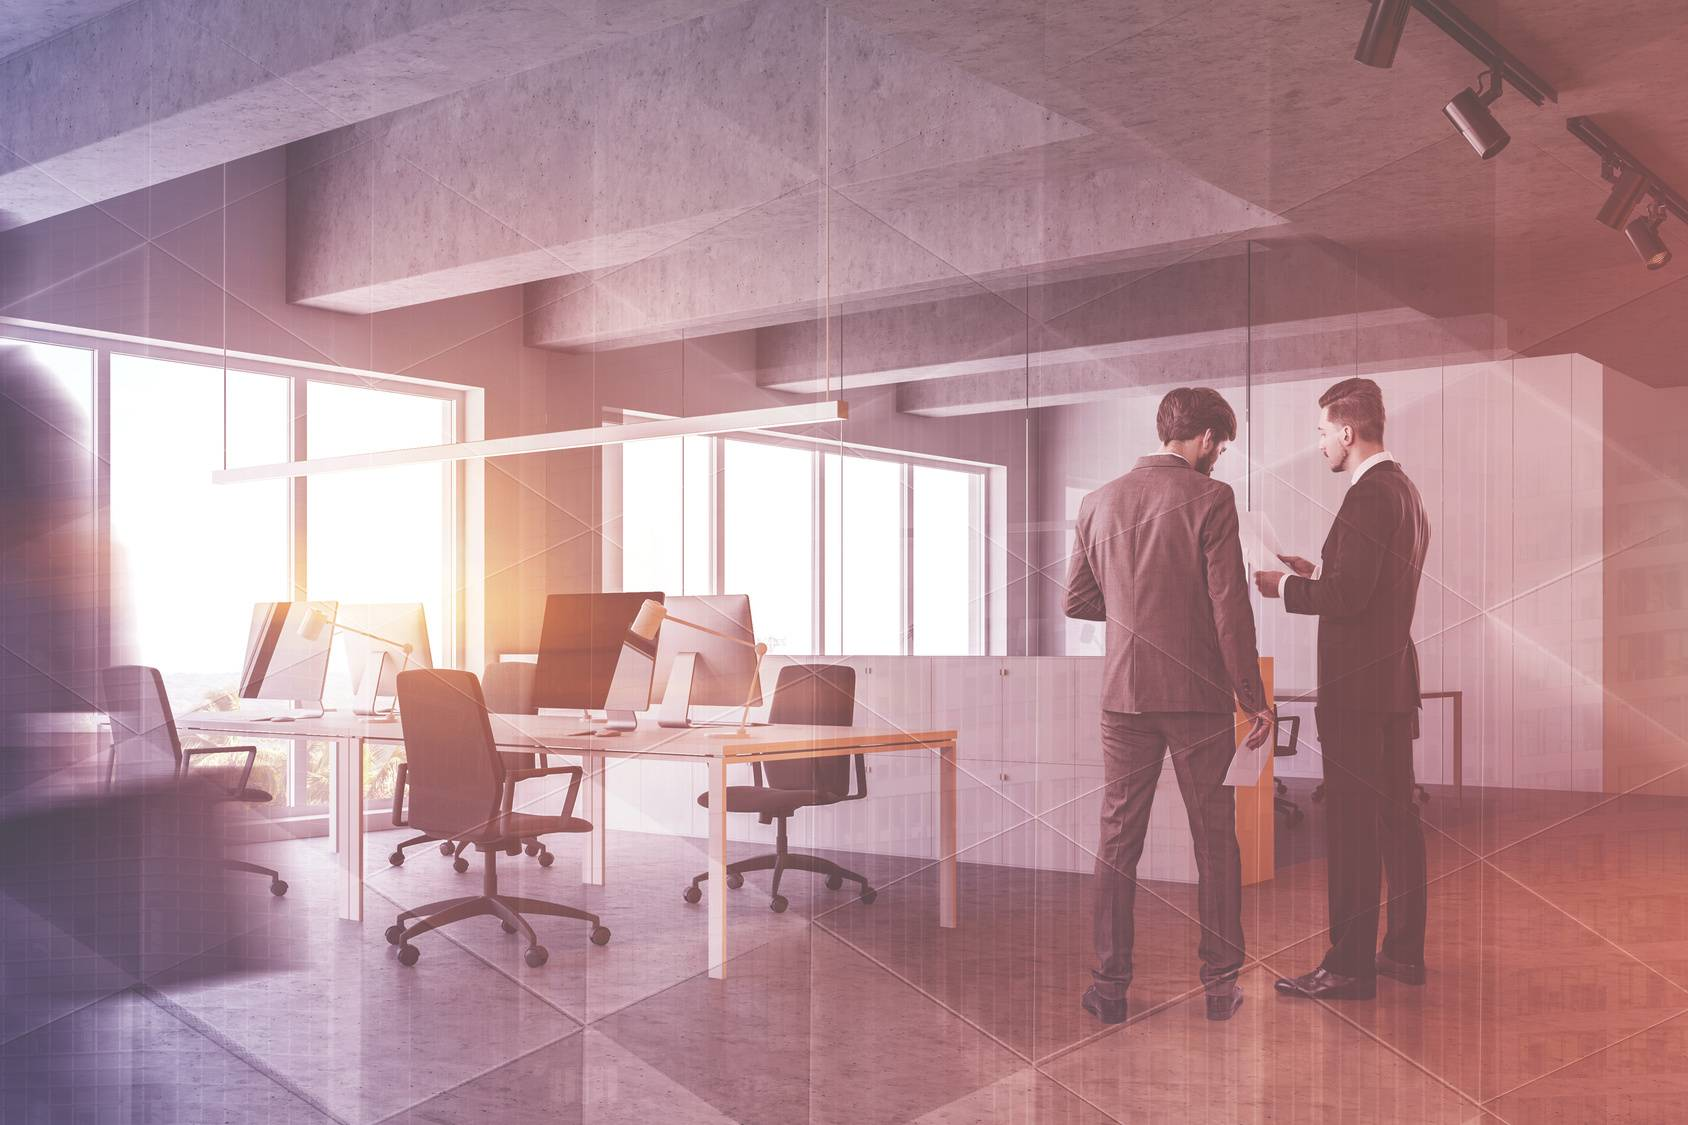 Business people discussing documents in industrial style office with white walls, concrete ceiling and row of white computer desks and file cabinets. Toned image double exposure blurred